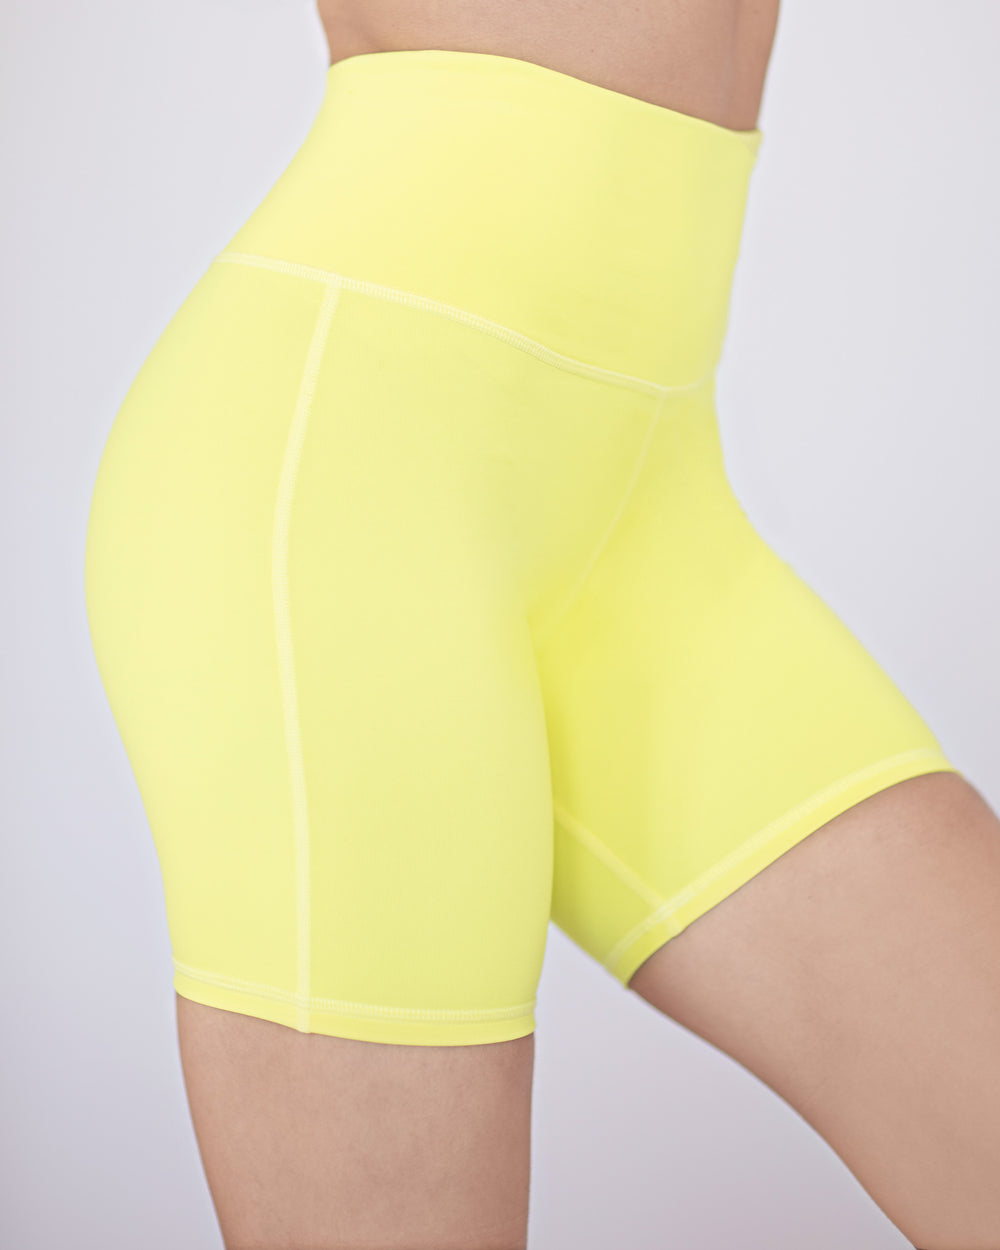 Instinct Bike Short 7 1/2 Inch - Electric Yellow